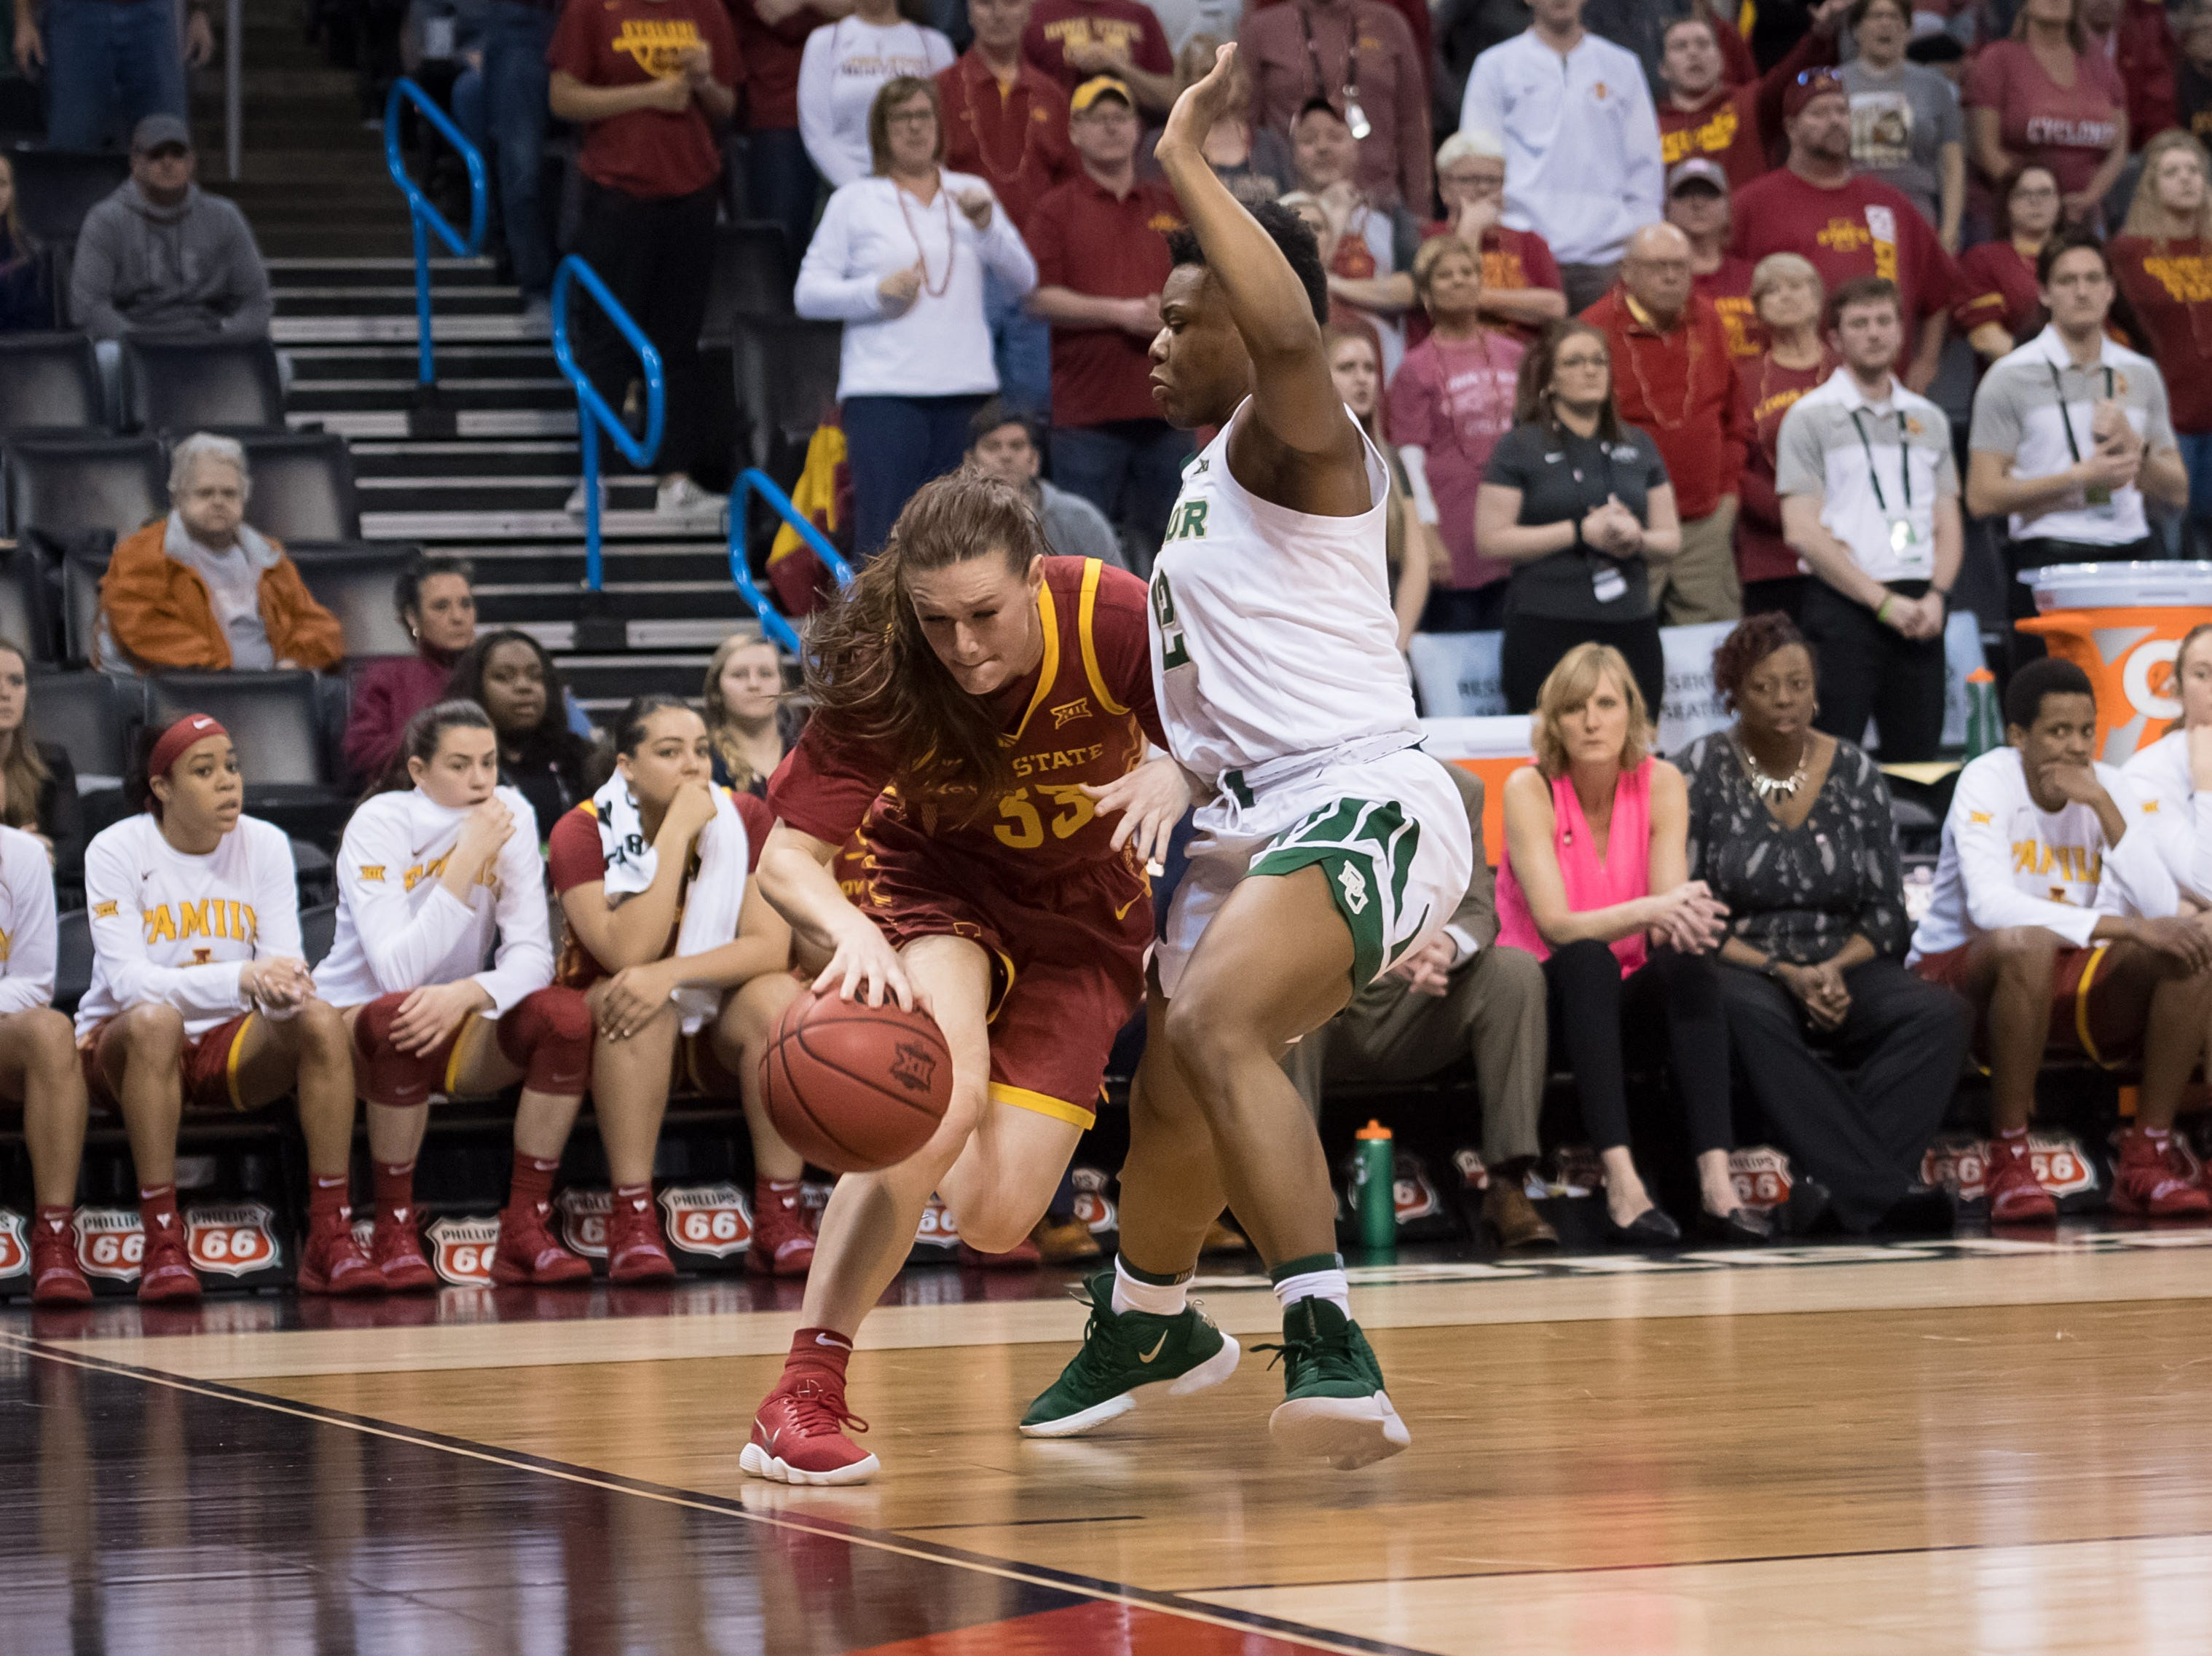 Iowa State Cyclones guard Alexa Middleton (33) dribbles past Baylor Lady Bears guard Moon Ursin (12) during the fourth quarter in the women's Big 12 Conference Tournament at Chesapeake Energy Arena. Baylor won 67-49.